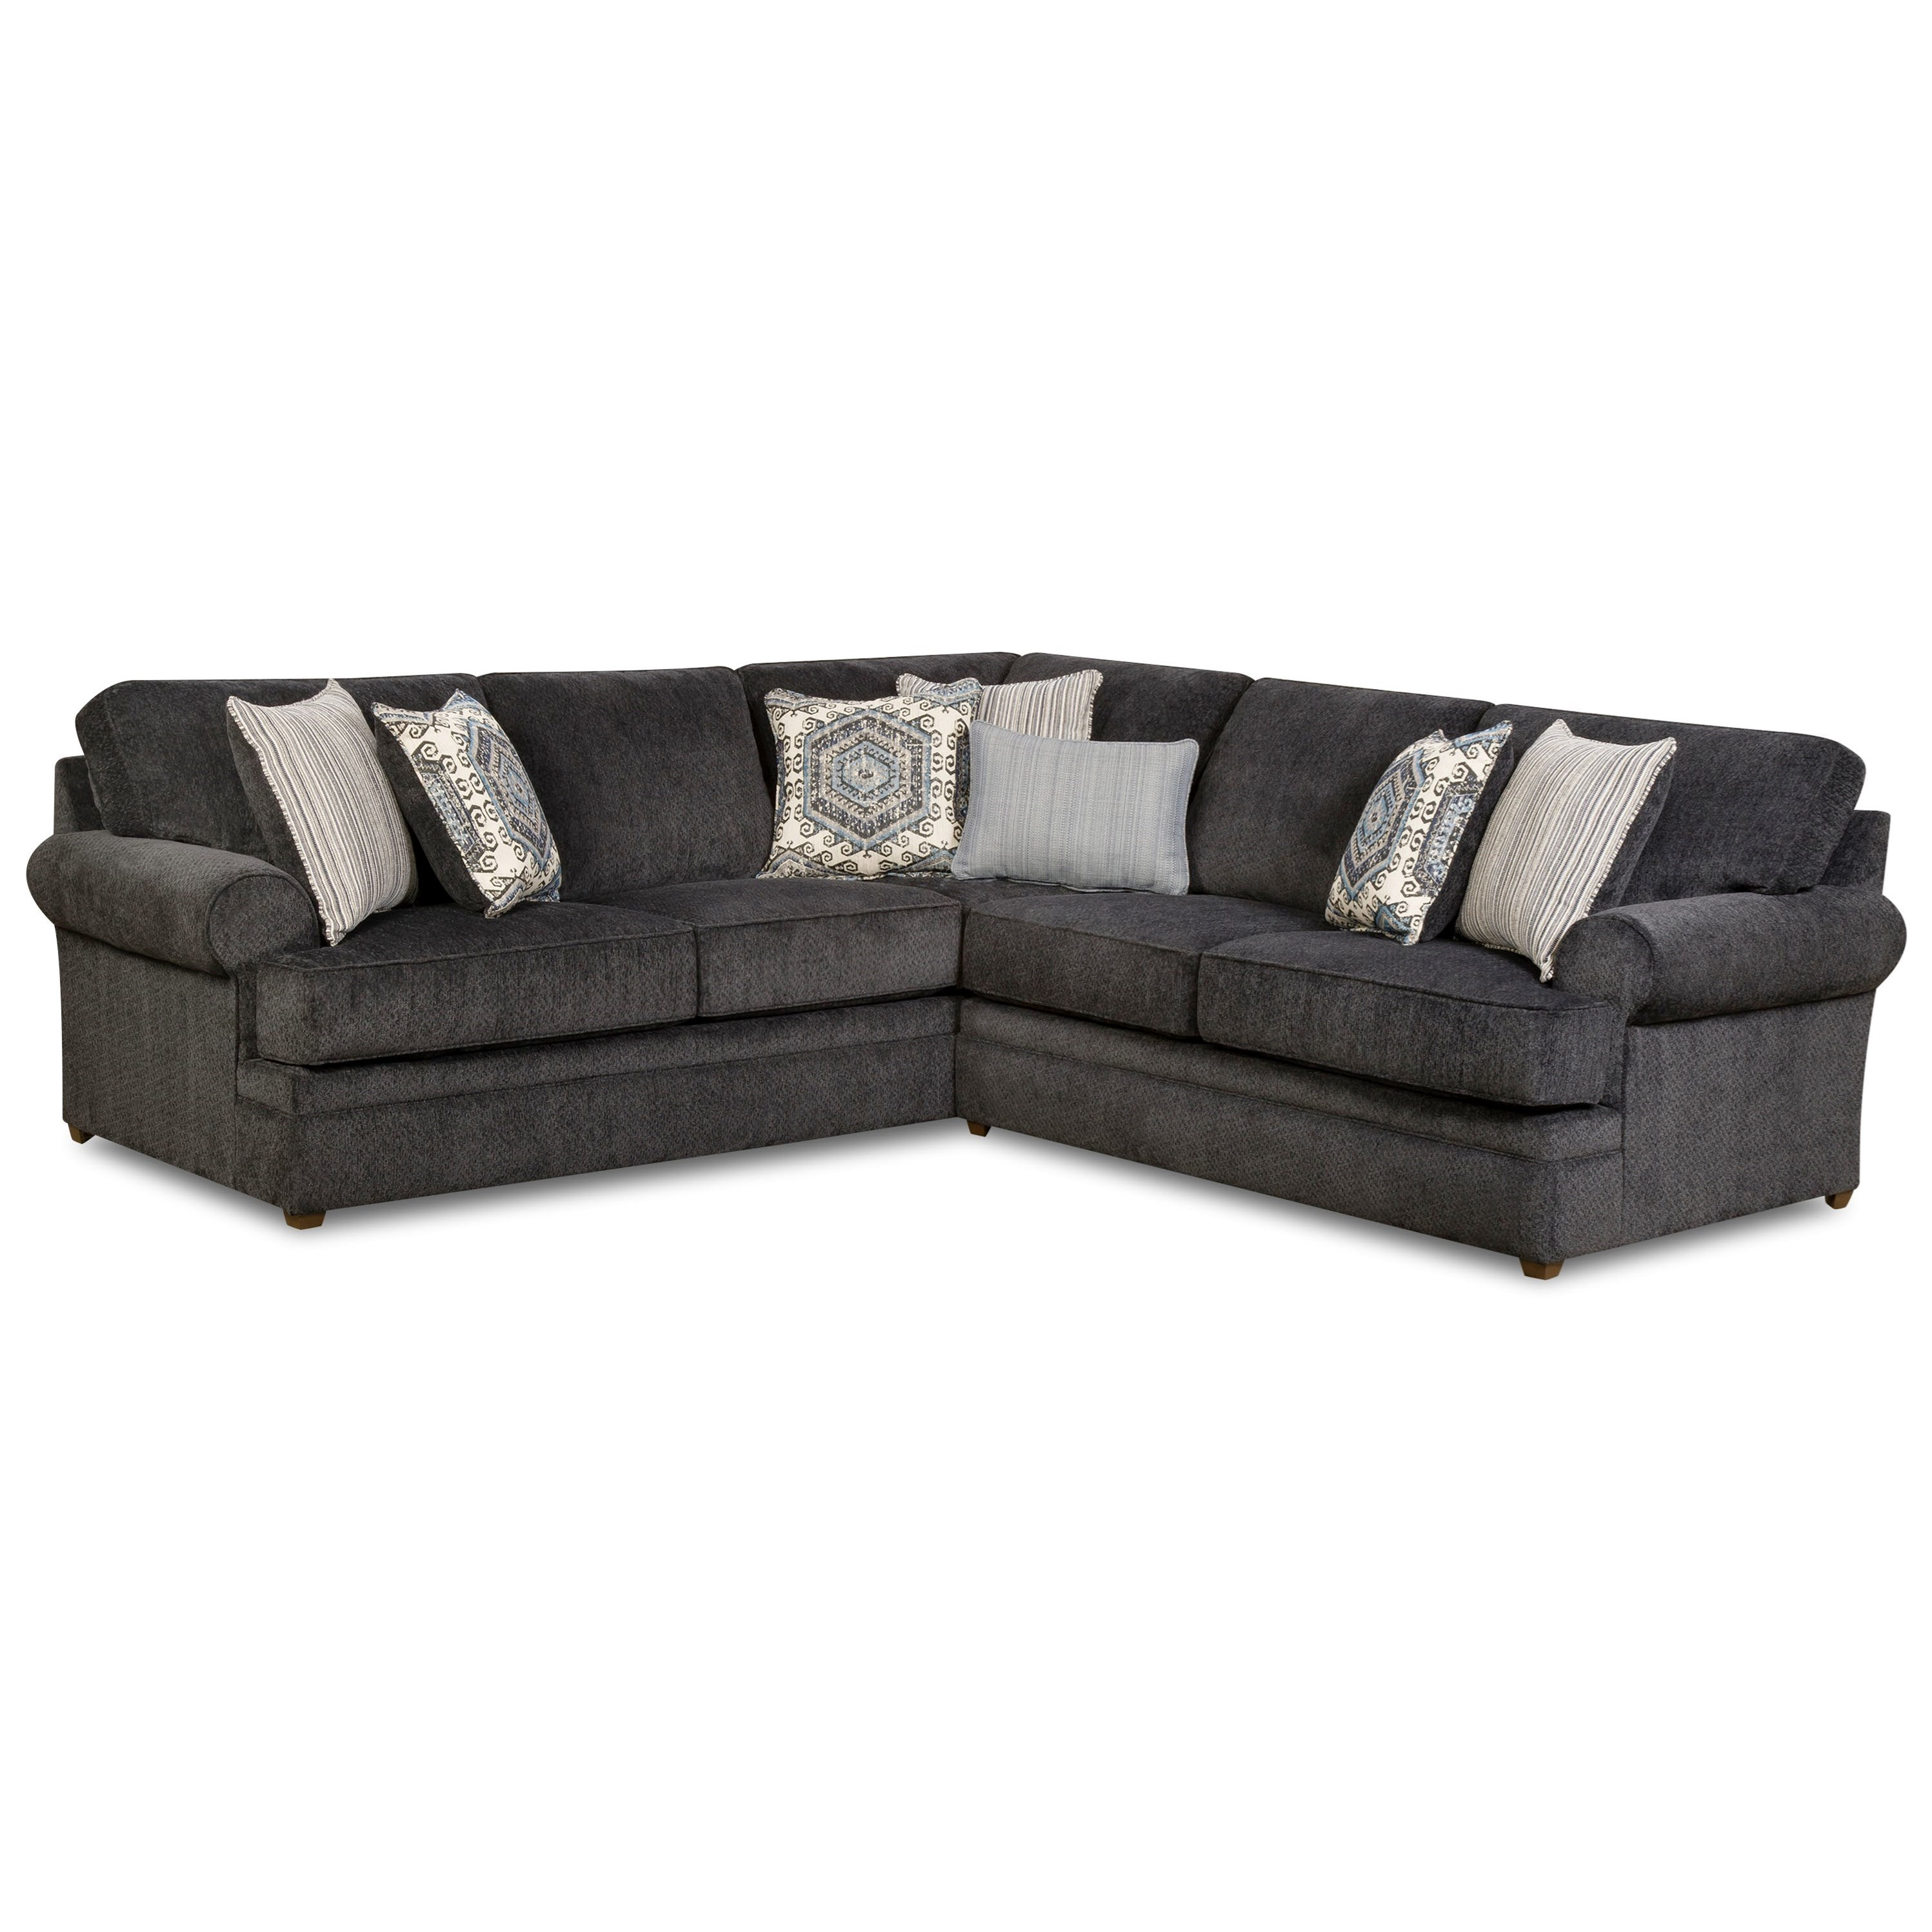 Simmons Upholstery 8530 BR Transitional Sectional Sofa - Item Number 8530BRLAFBChaise+RAFLVseat-Slate  sc 1 st  Royal Furniture : sectional chaise sofa - Sectionals, Sofas & Couches